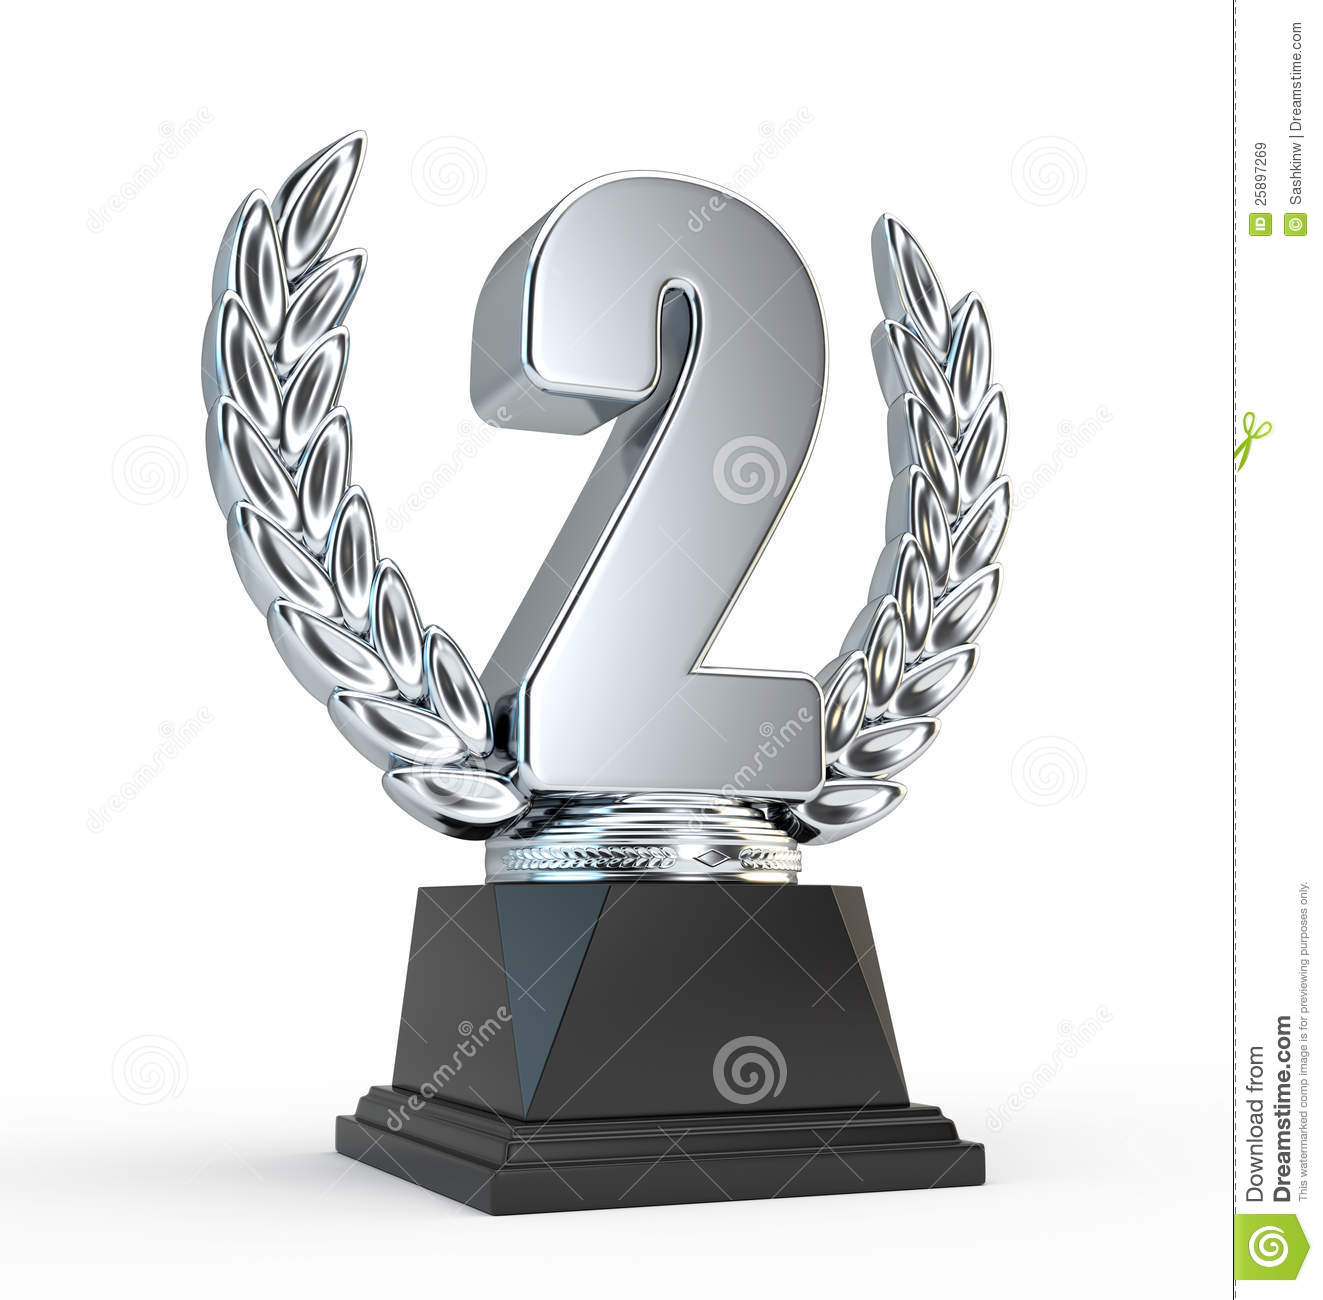 2nd place stock vector illustration royalty free 2nd place clipart - Second Place Trophy Cup Royalty Free Stock Images Image